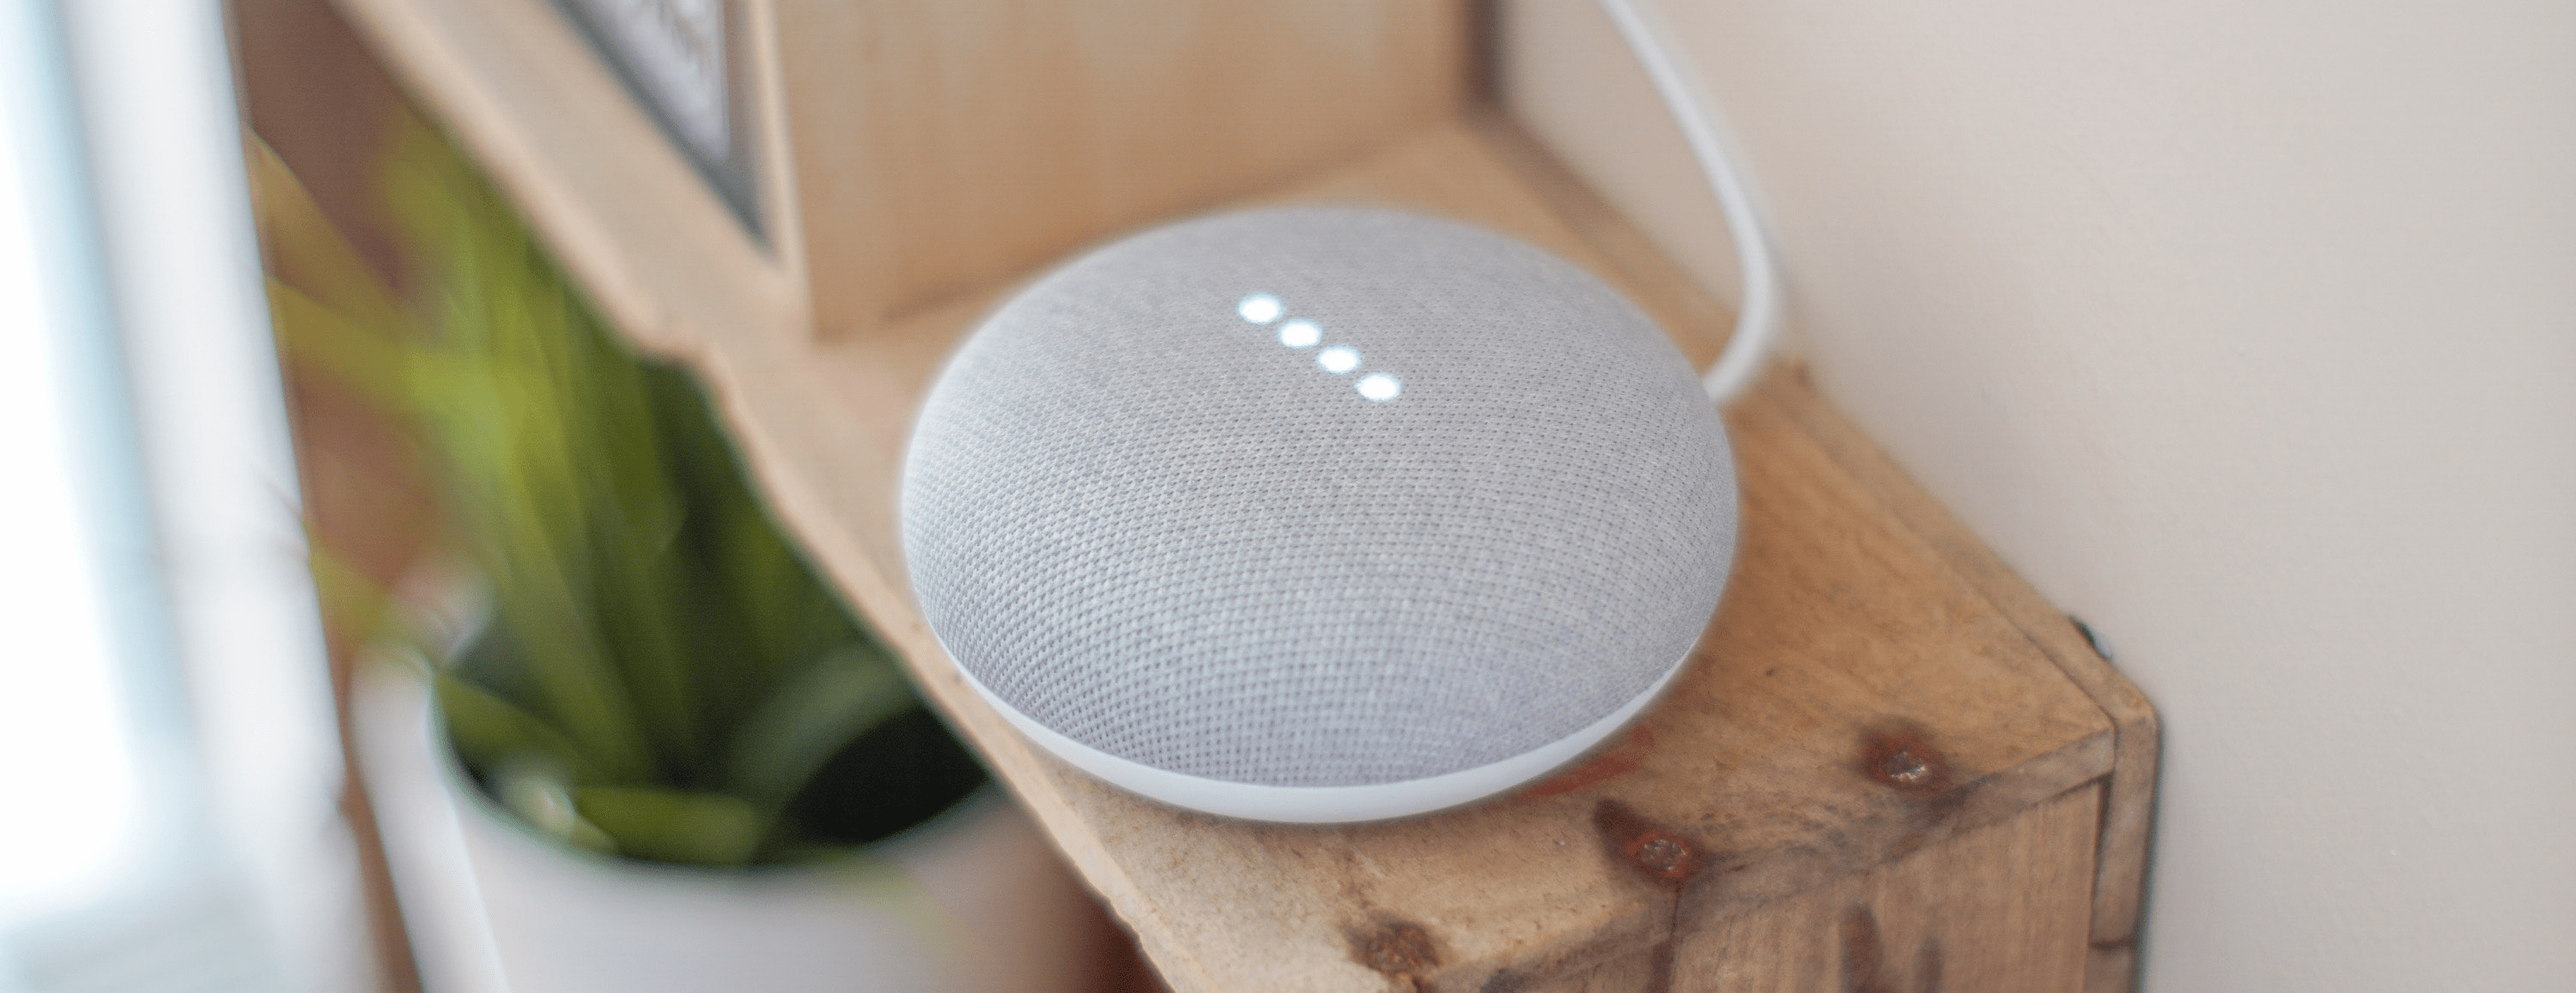 7 Awesome Tips & Tricks to Get the Most from Your Smart Home Devices